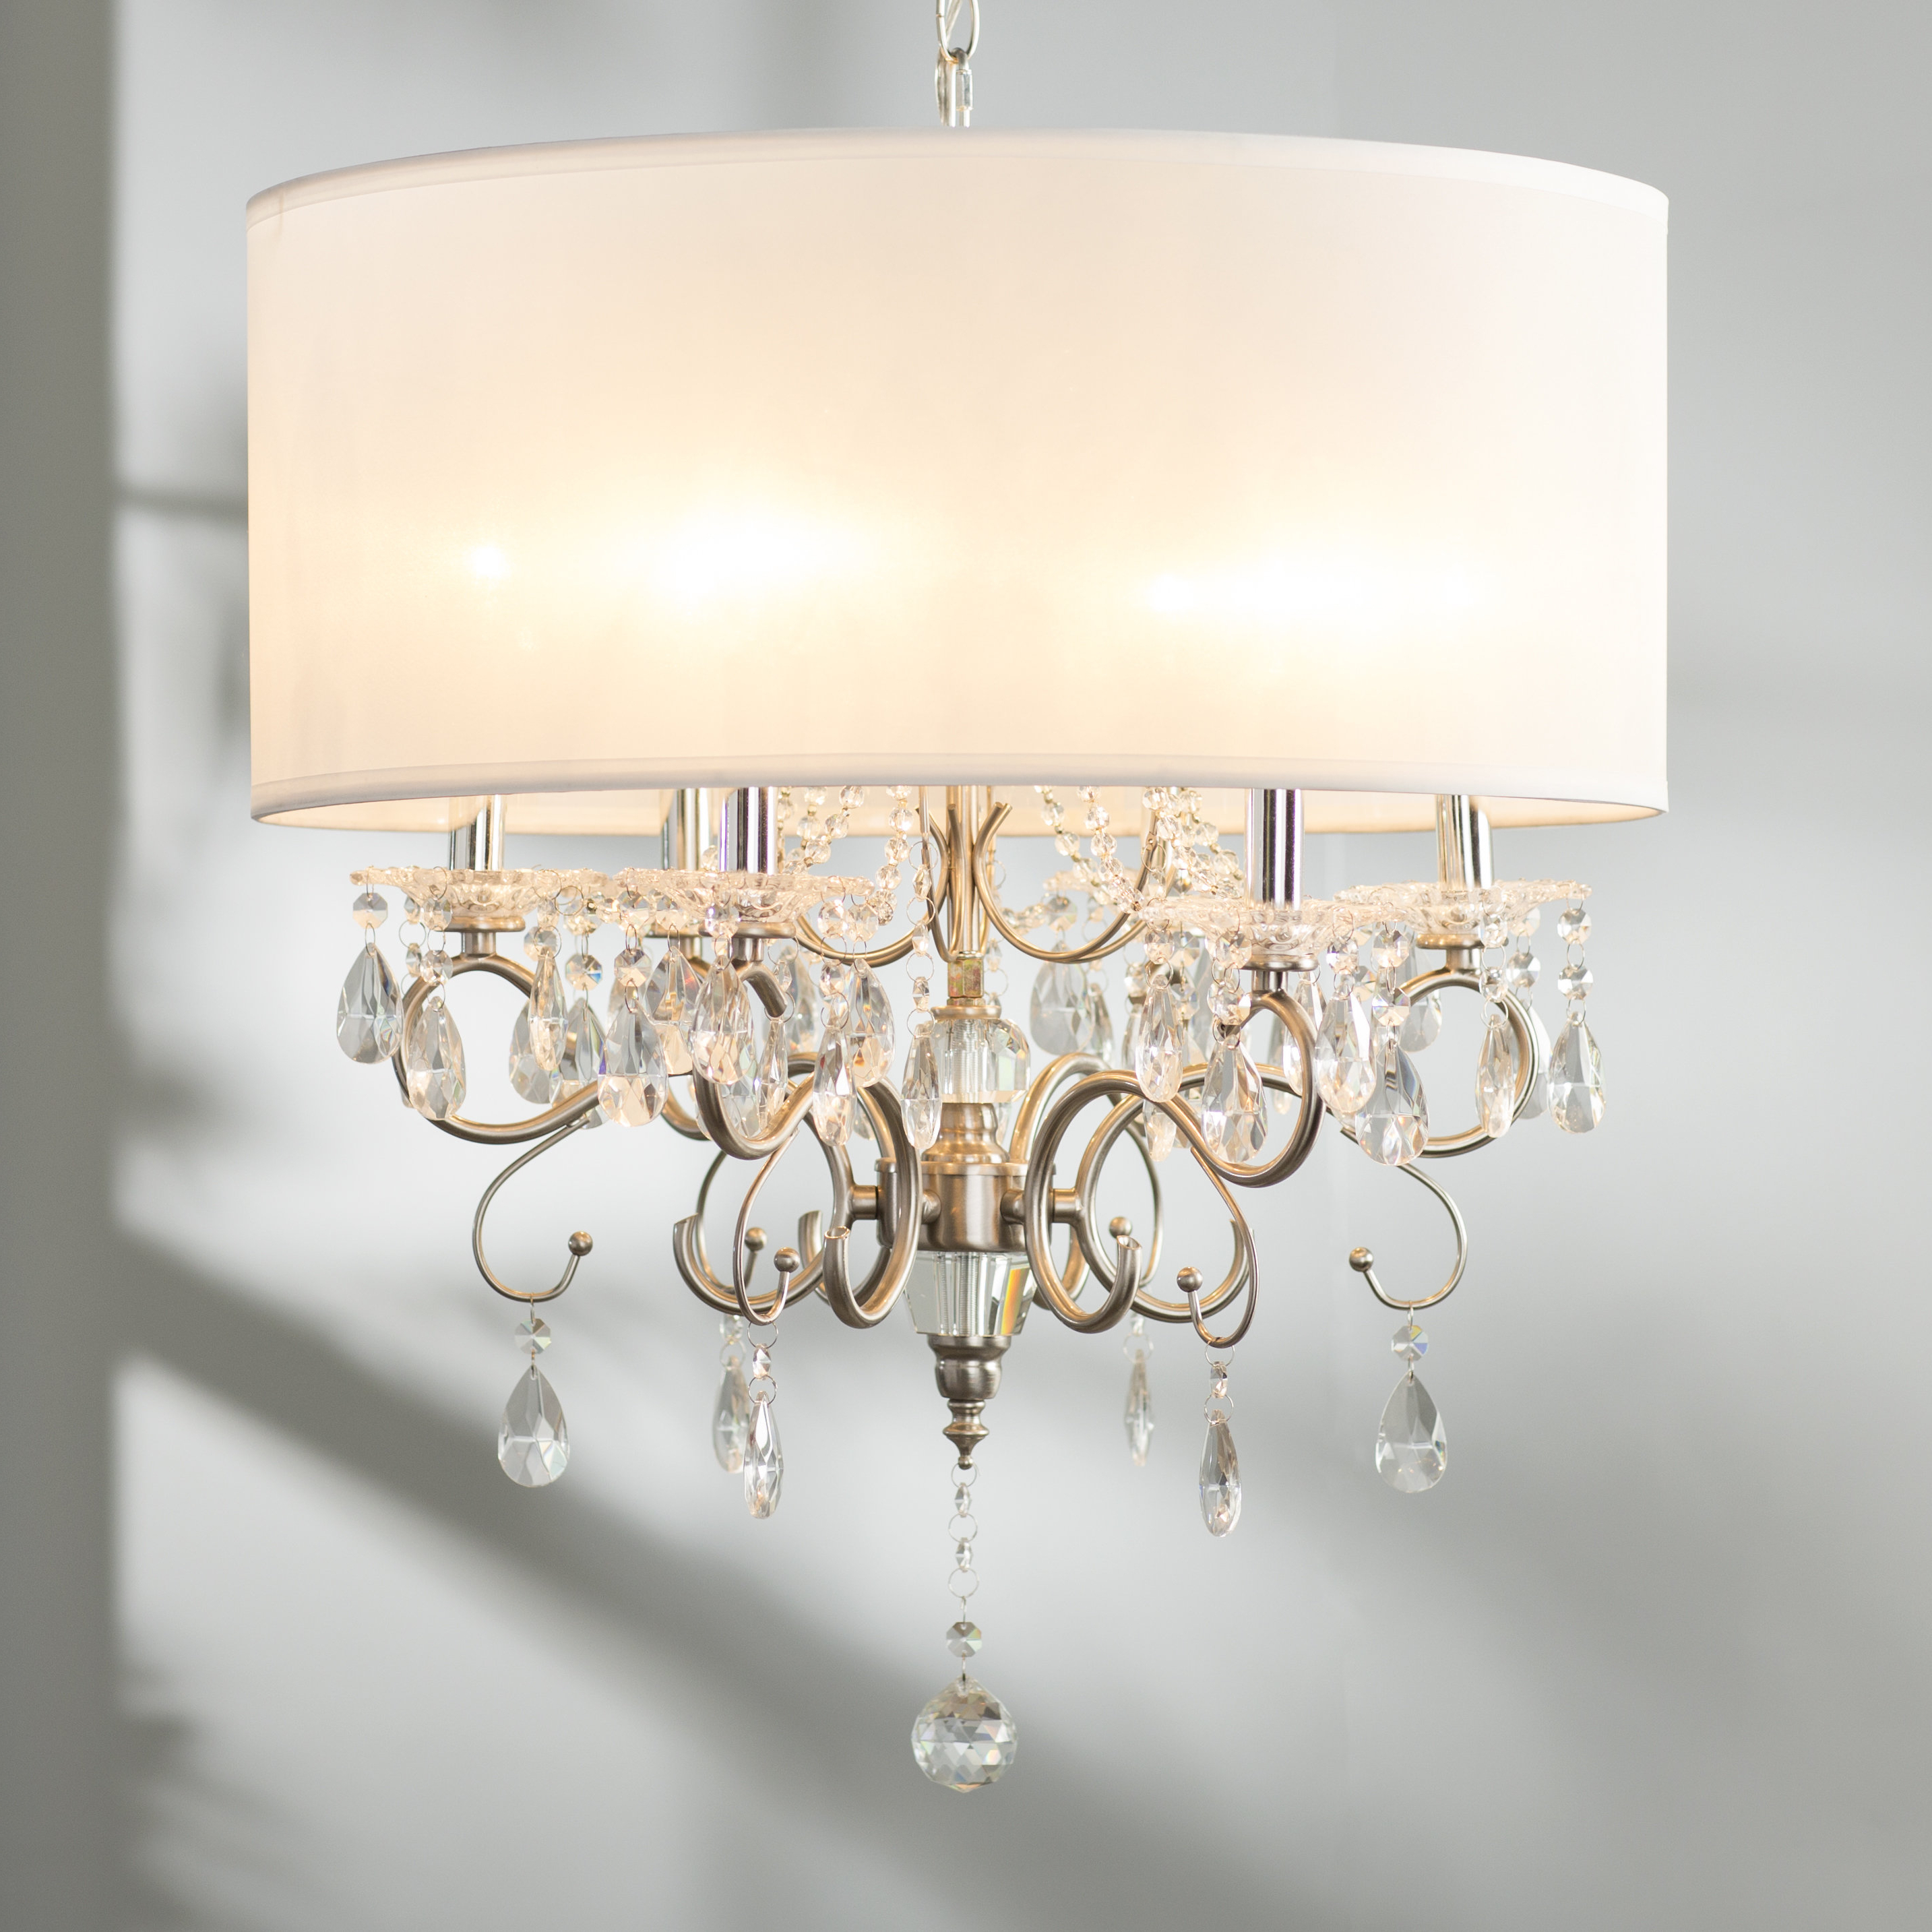 [%Drum Chandeliers Sale – Up To 65% Off Until September 30Th Intended For Current Gisselle 4 Light Drum Chandeliers|Gisselle 4 Light Drum Chandeliers Intended For Newest Drum Chandeliers Sale – Up To 65% Off Until September 30Th|Latest Gisselle 4 Light Drum Chandeliers Throughout Drum Chandeliers Sale – Up To 65% Off Until September 30Th|2020 Drum Chandeliers Sale – Up To 65% Off Until September 30Th Pertaining To Gisselle 4 Light Drum Chandeliers%] (View 1 of 25)